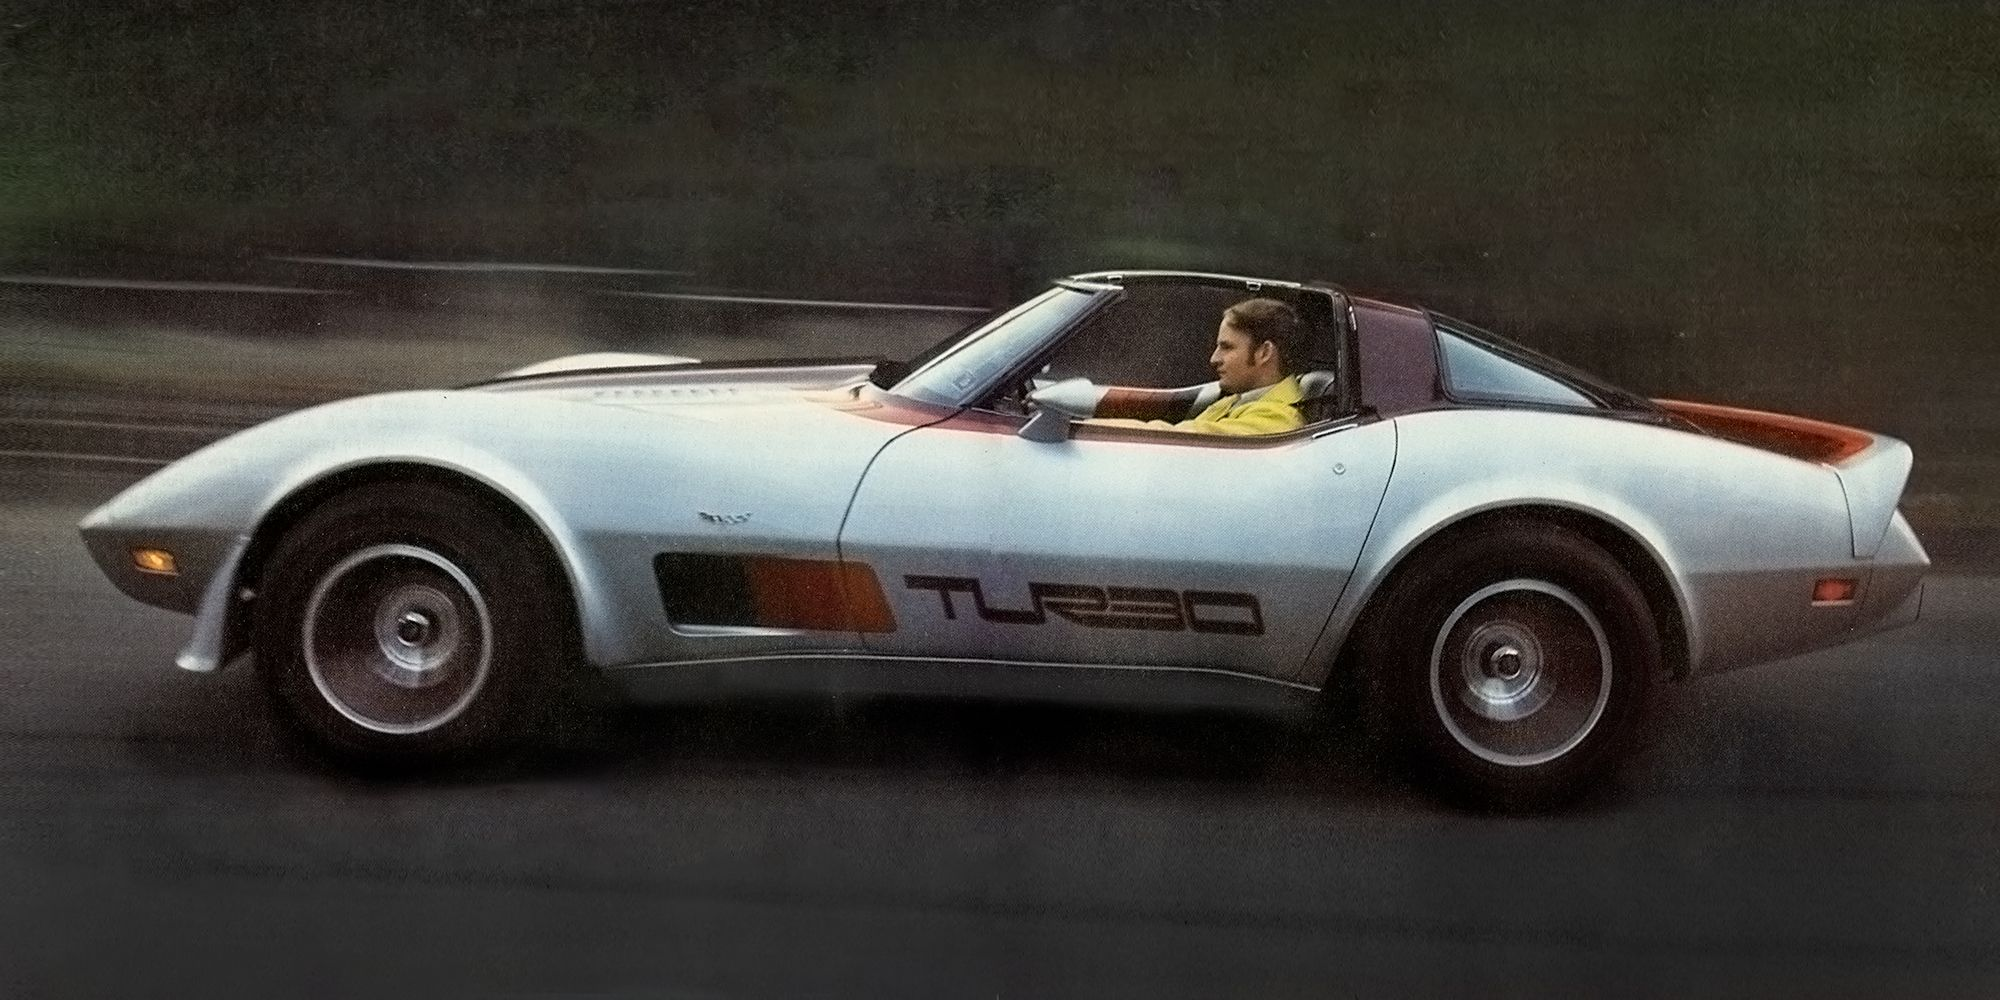 Our 1980 Drive In Chevrolets Experimental Twin Turbo Corvette Airflow Diagram